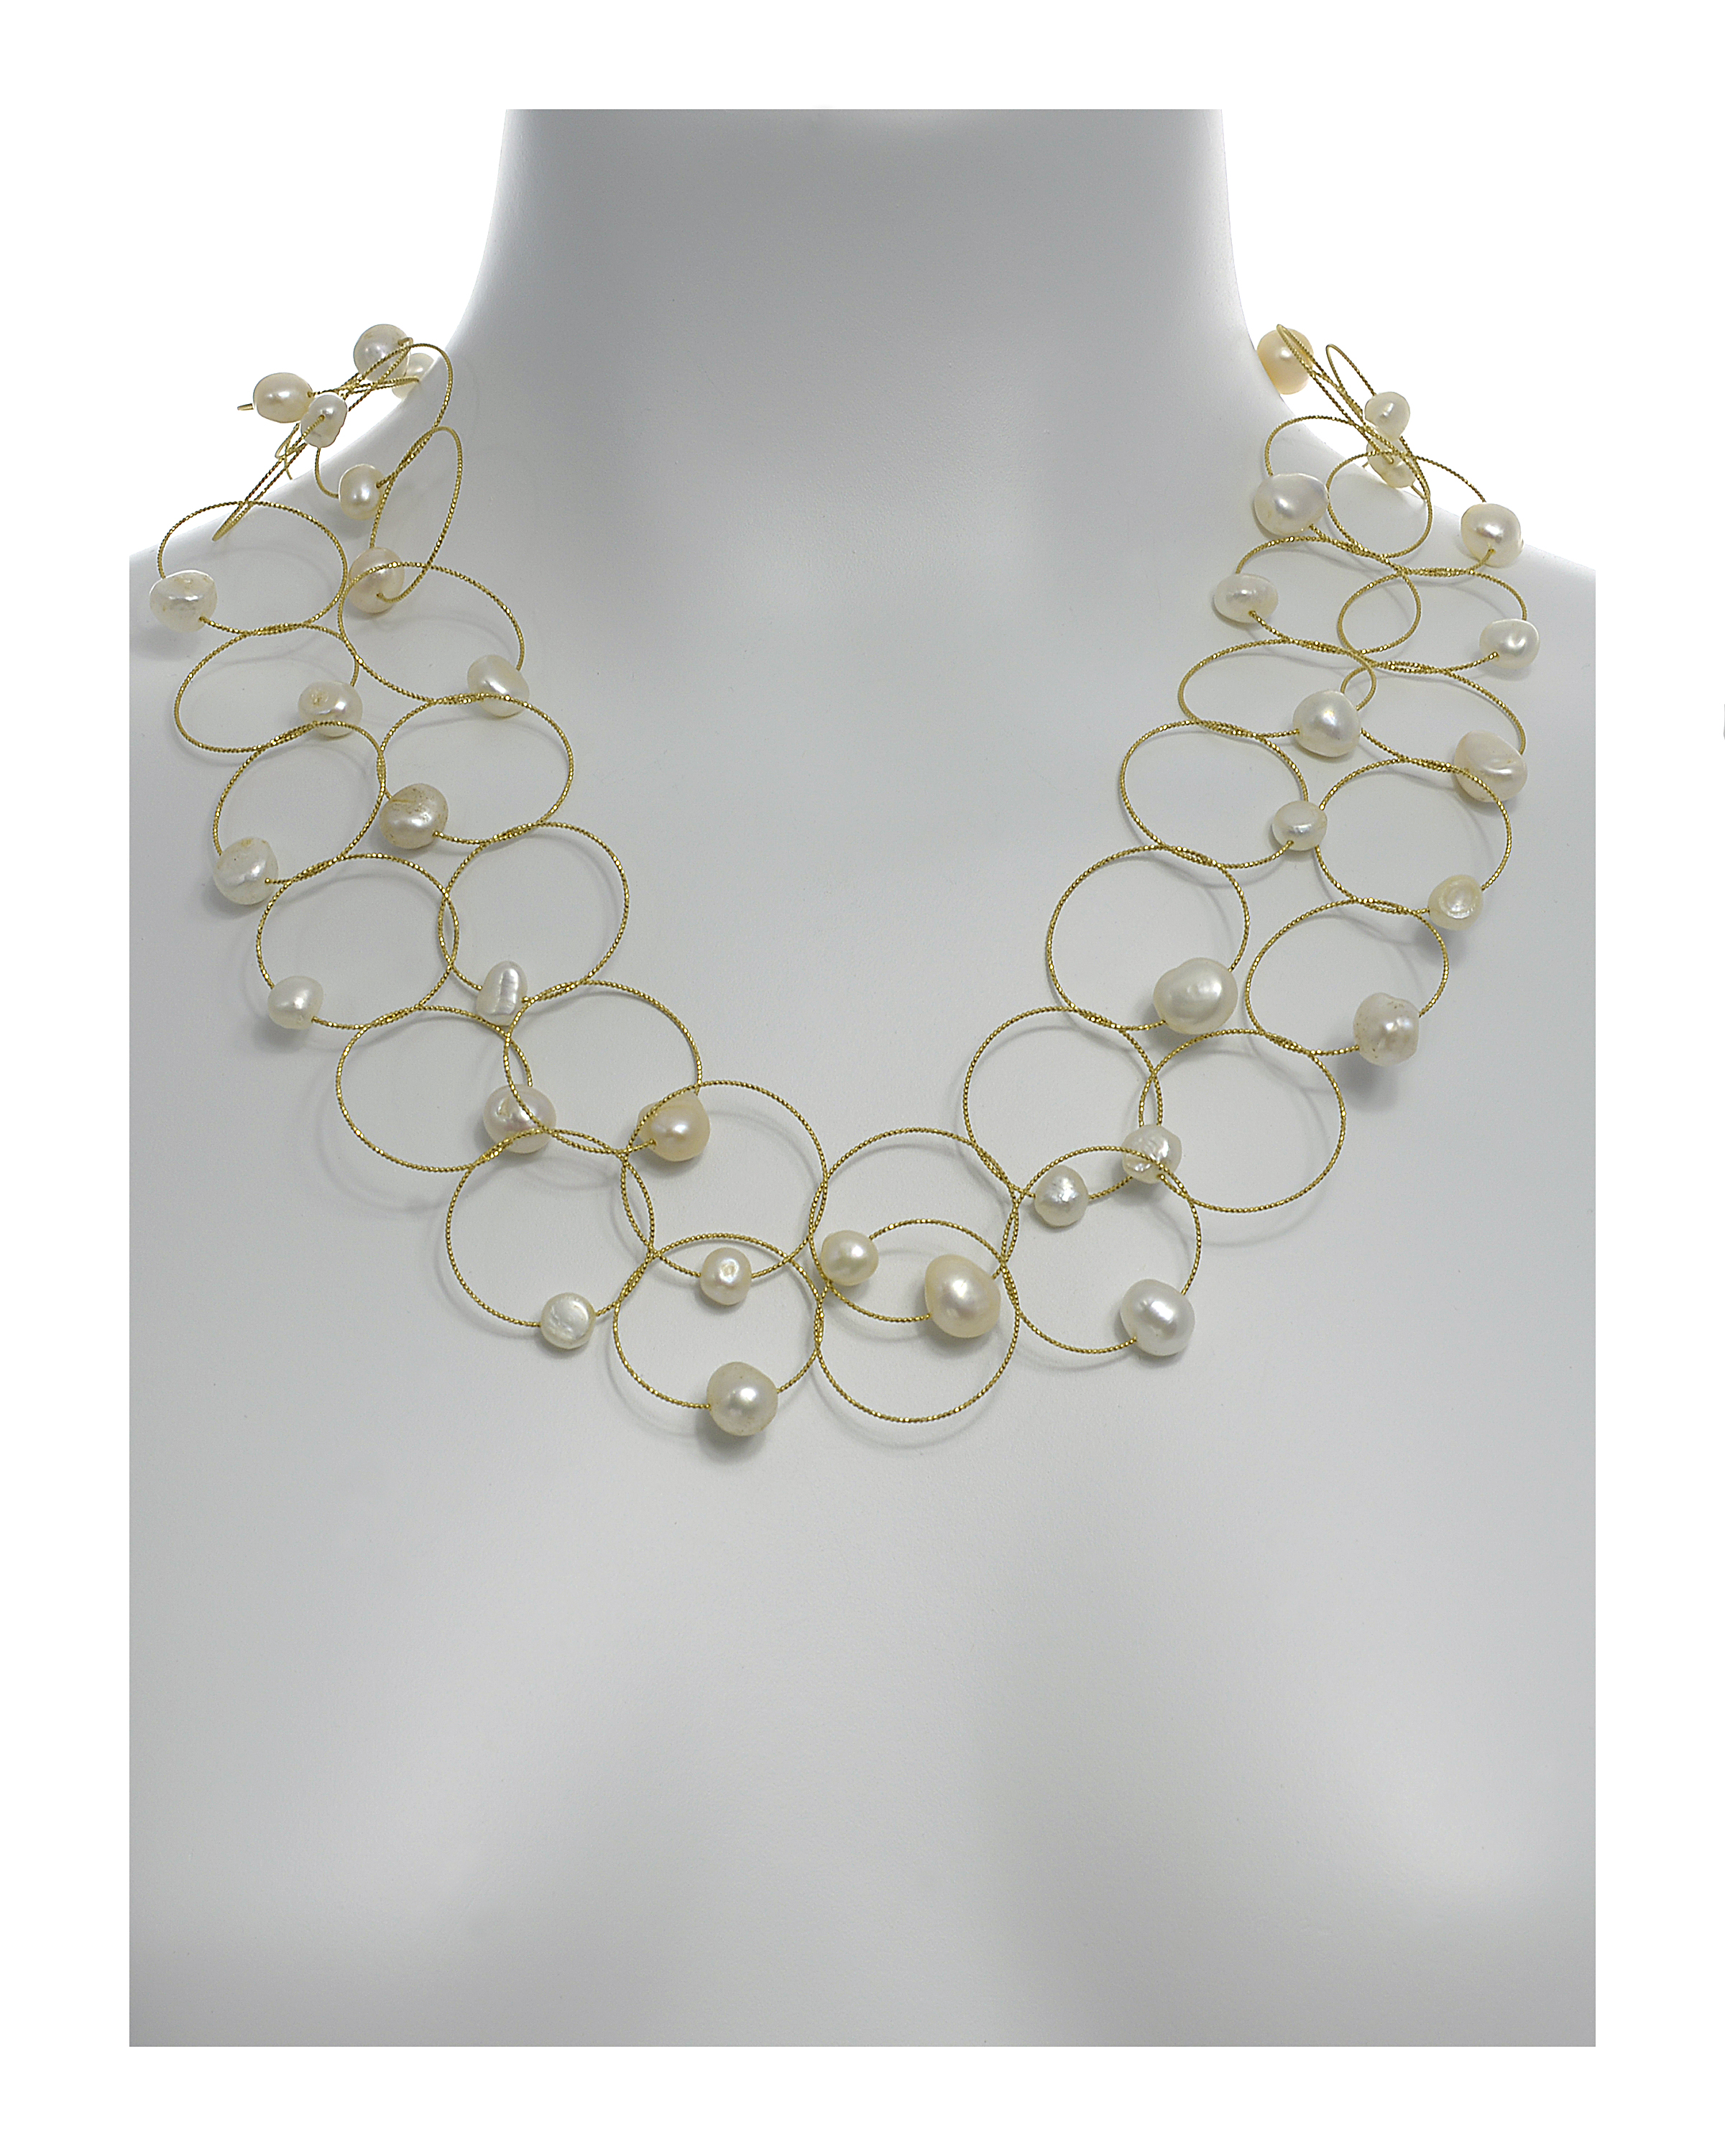 Truilli - Pearl Necklace shown on mannequin